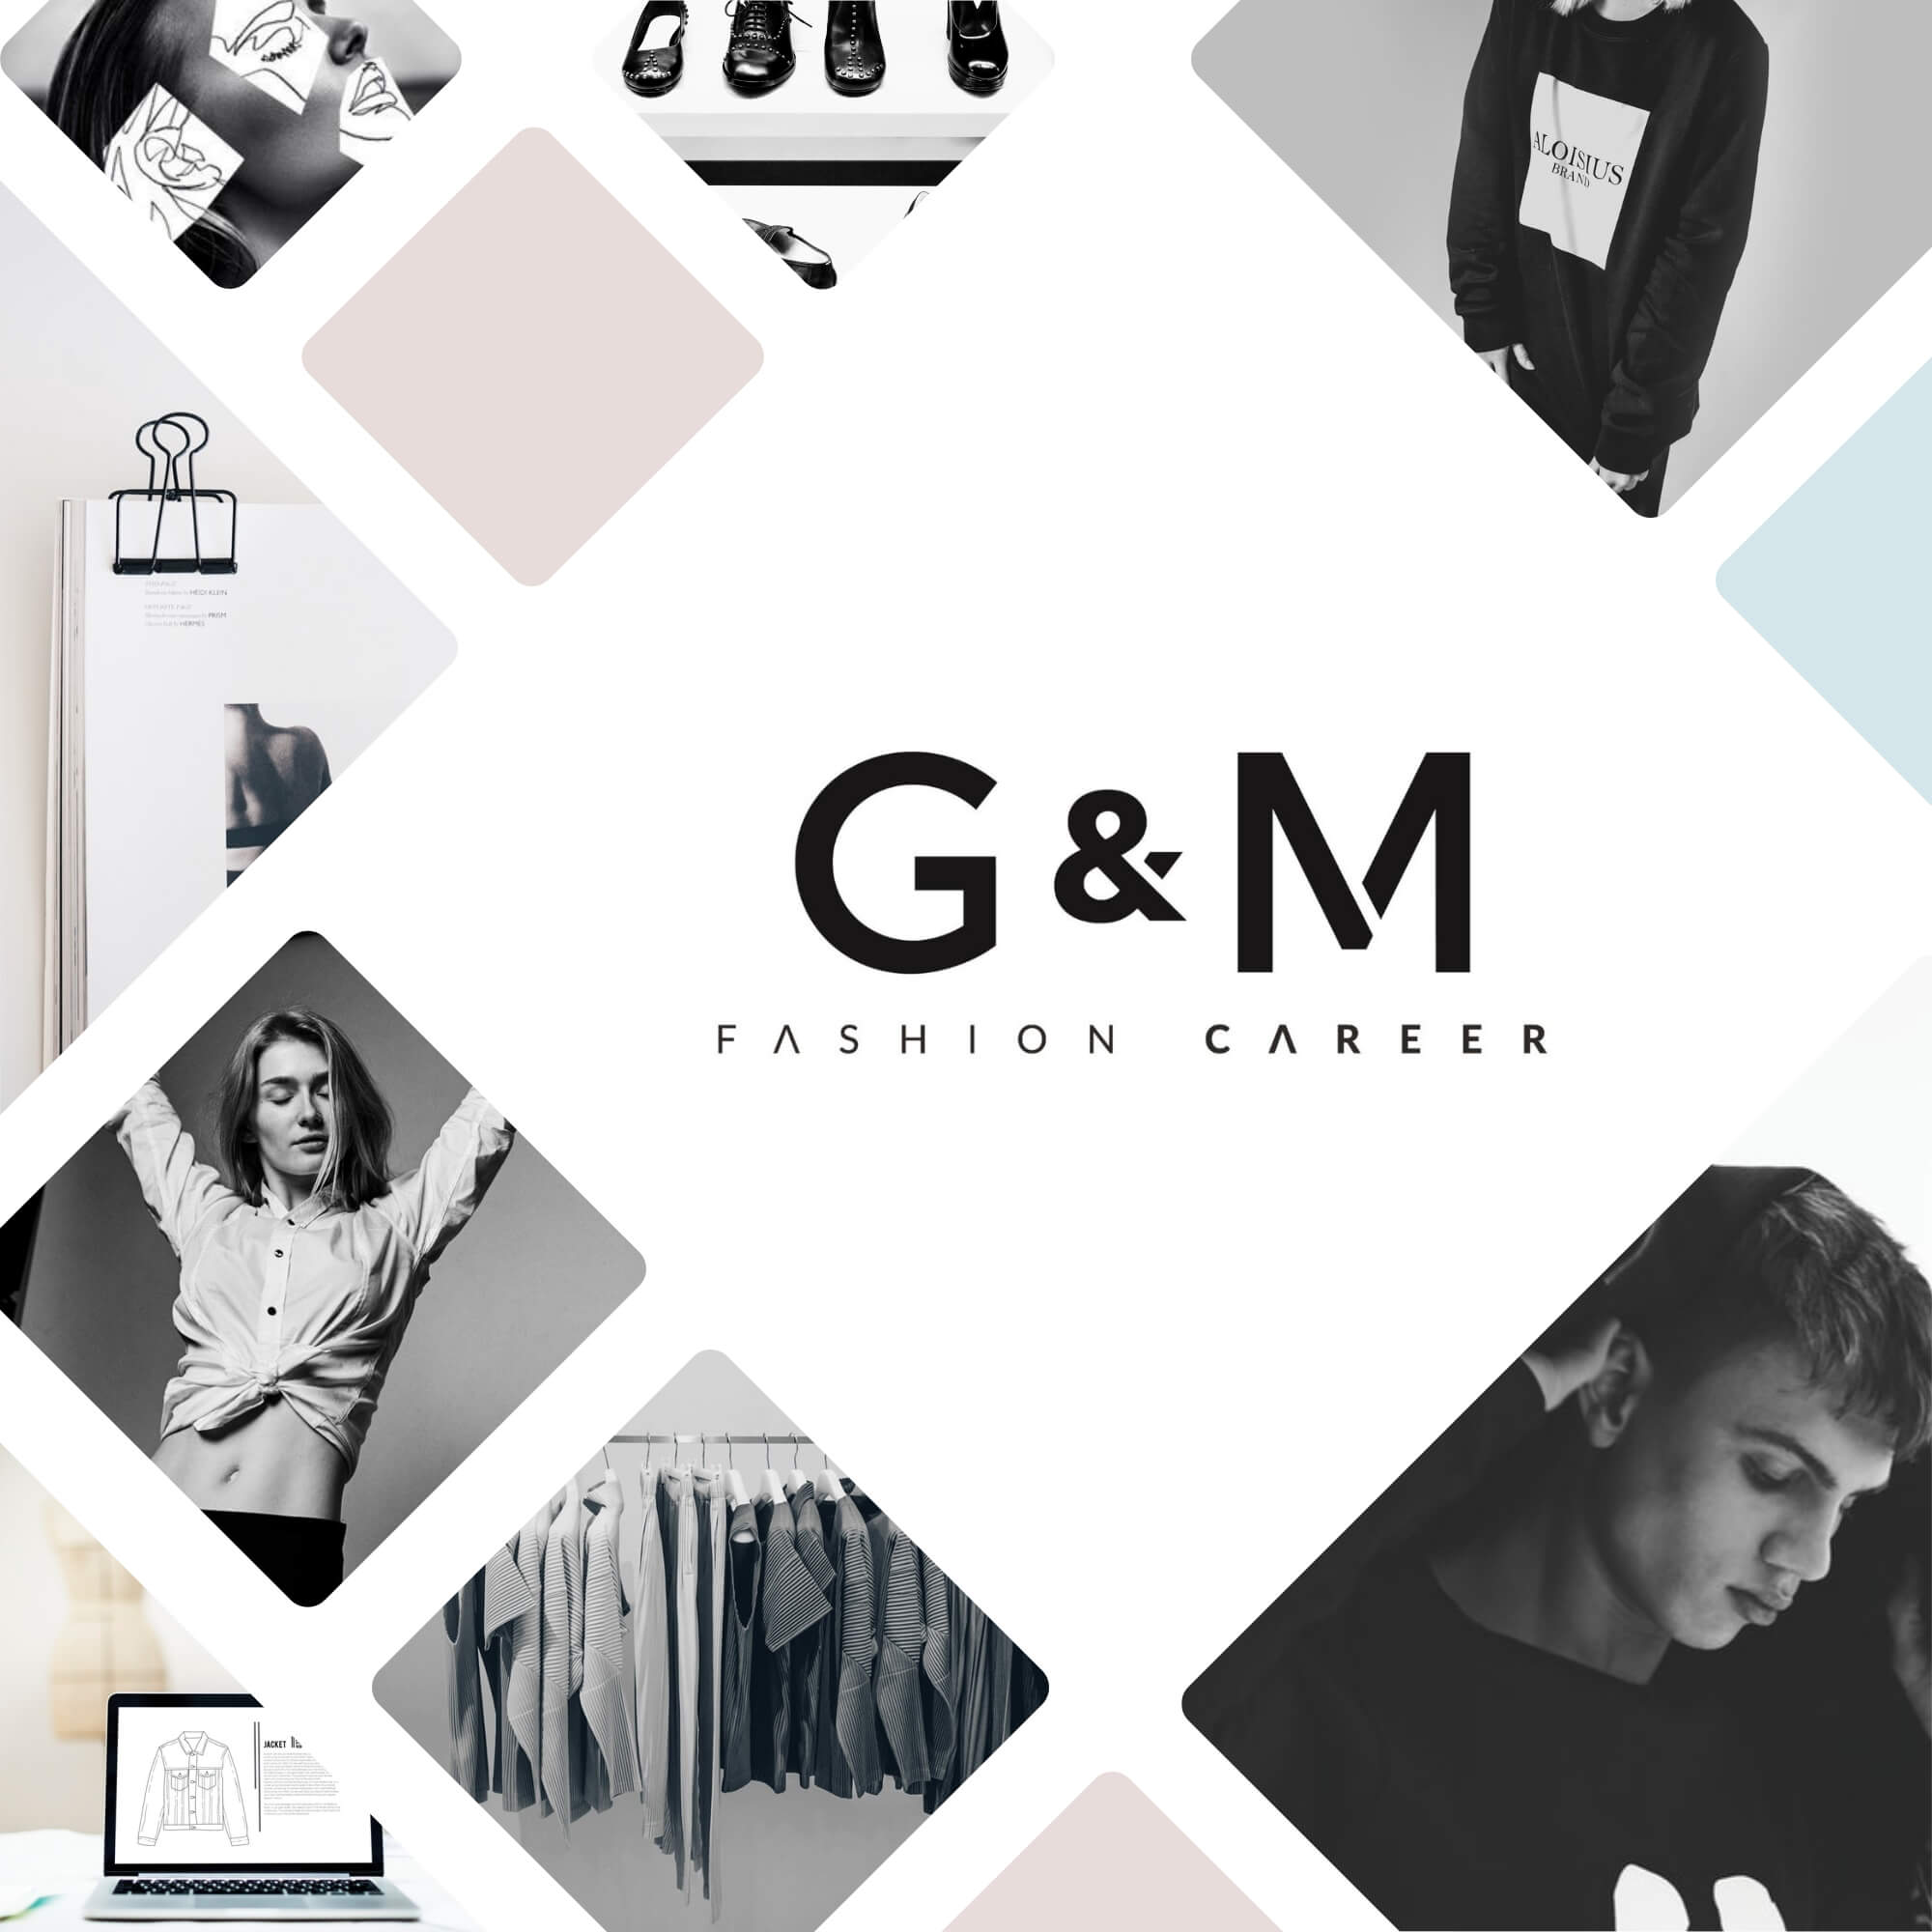 Find Your Perfect Job in the Fashion, Luxury and Lifestyle Business | G&M Fashion Career